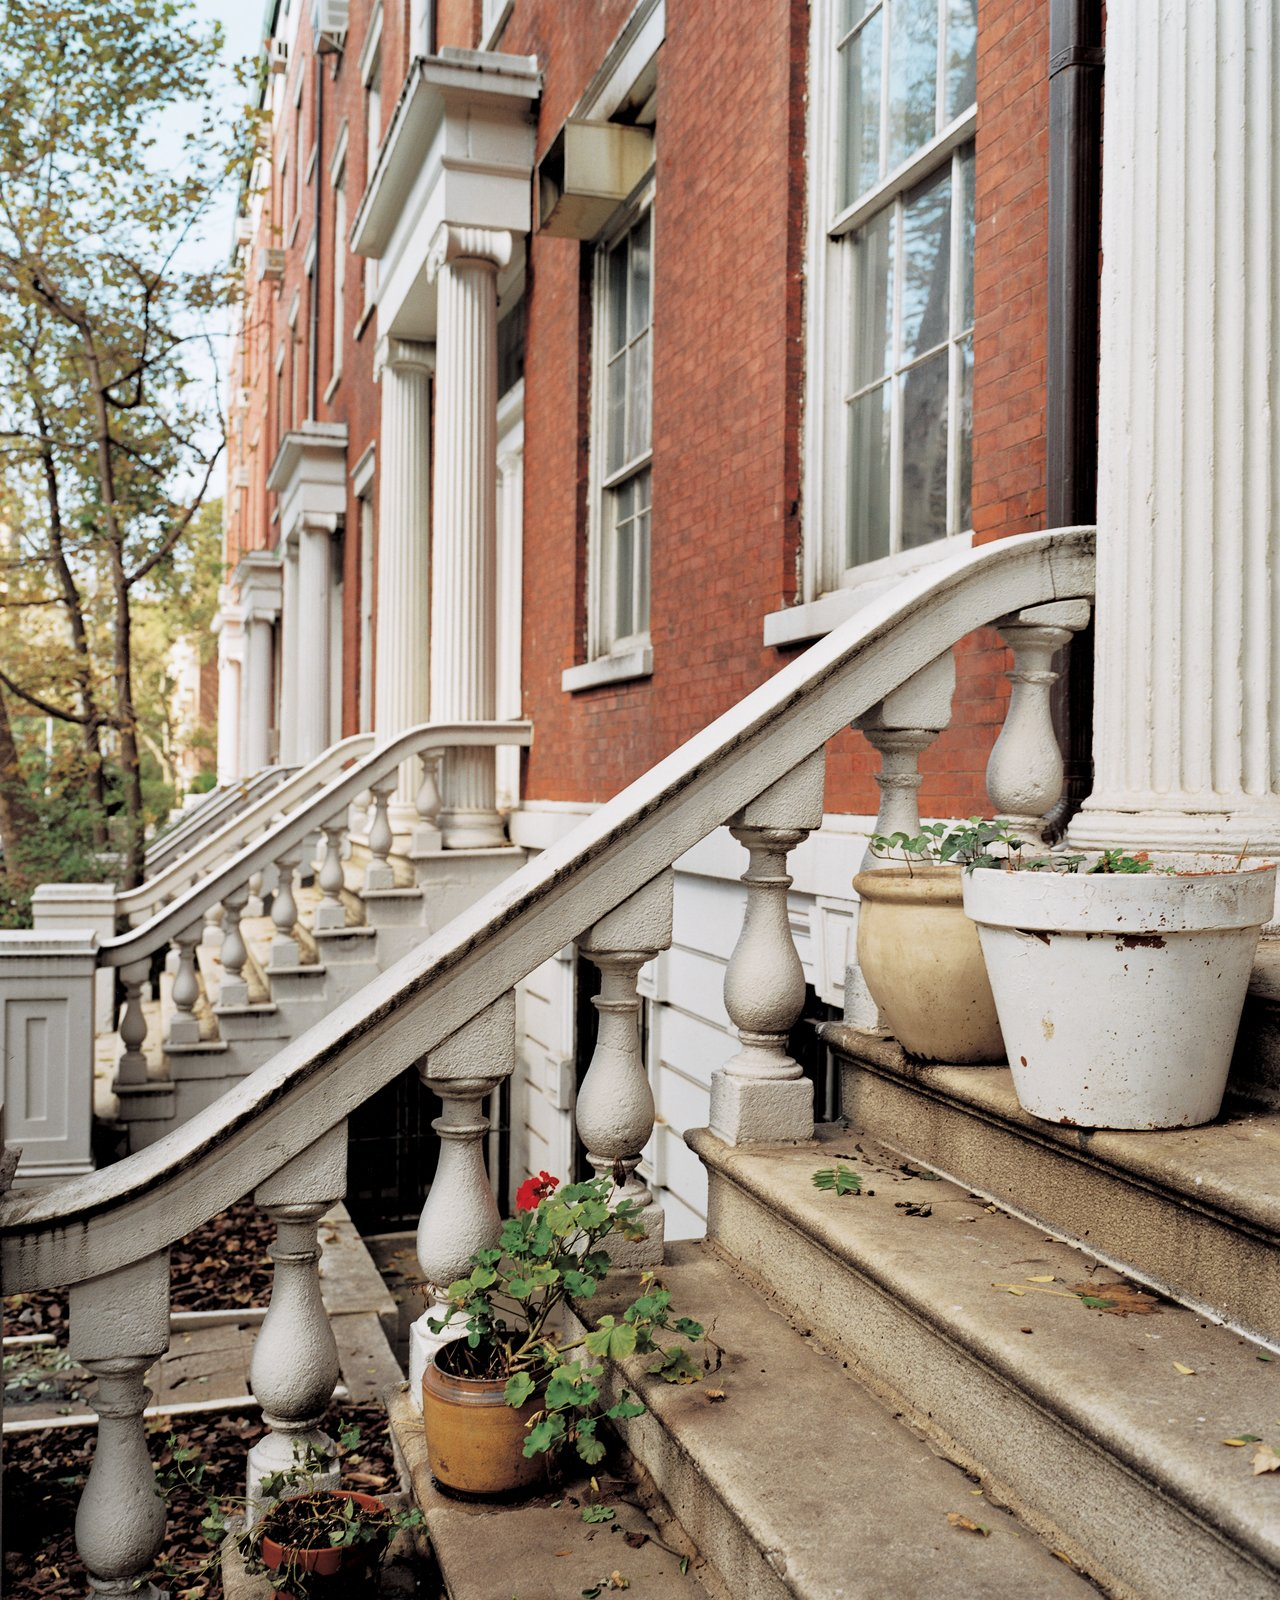 """The façades of the Greek Revival town houses that comprise """"the Row,"""" on Greenwich Village's Washington Square, still evoke pre–Gilded Age New York. Within, however, modernity prevails.  Photo 1 of 8 in Row House Revival"""